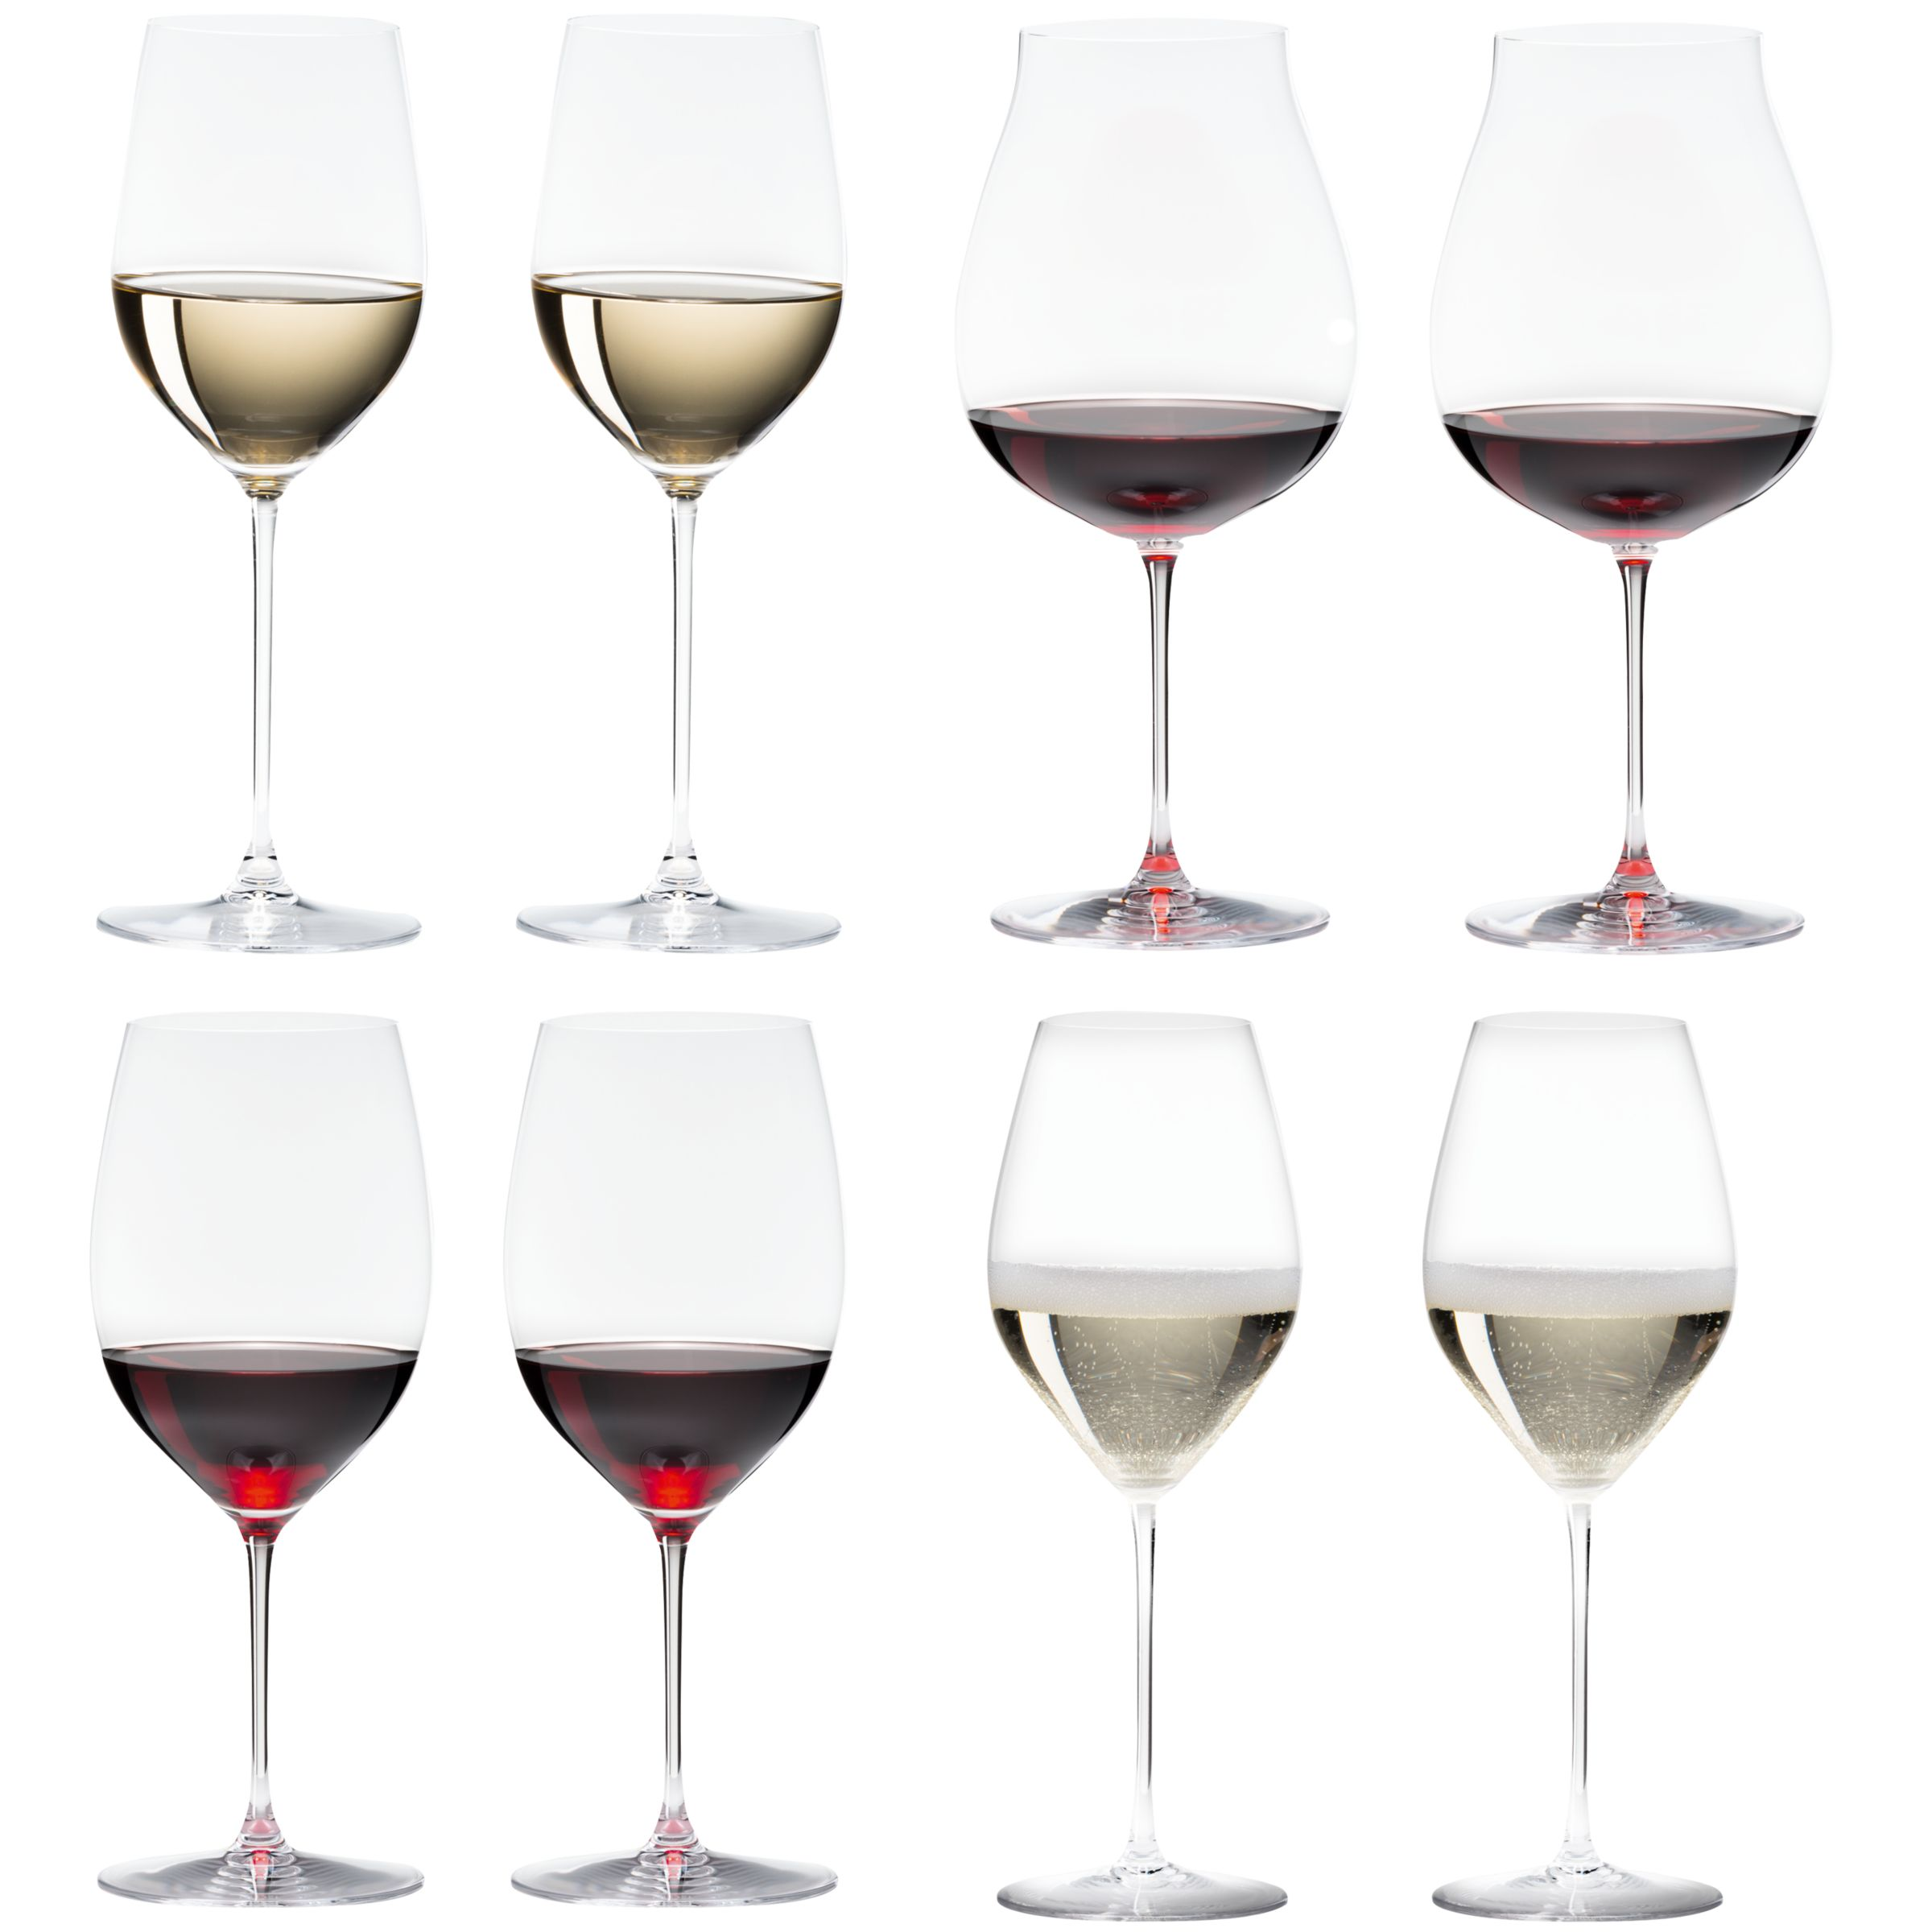 Riedel Riedel Veritas Cabernet / Merlot & New World Pinot Noir & Viognier / Chardonnay & Champagne Glasses, Box of 8